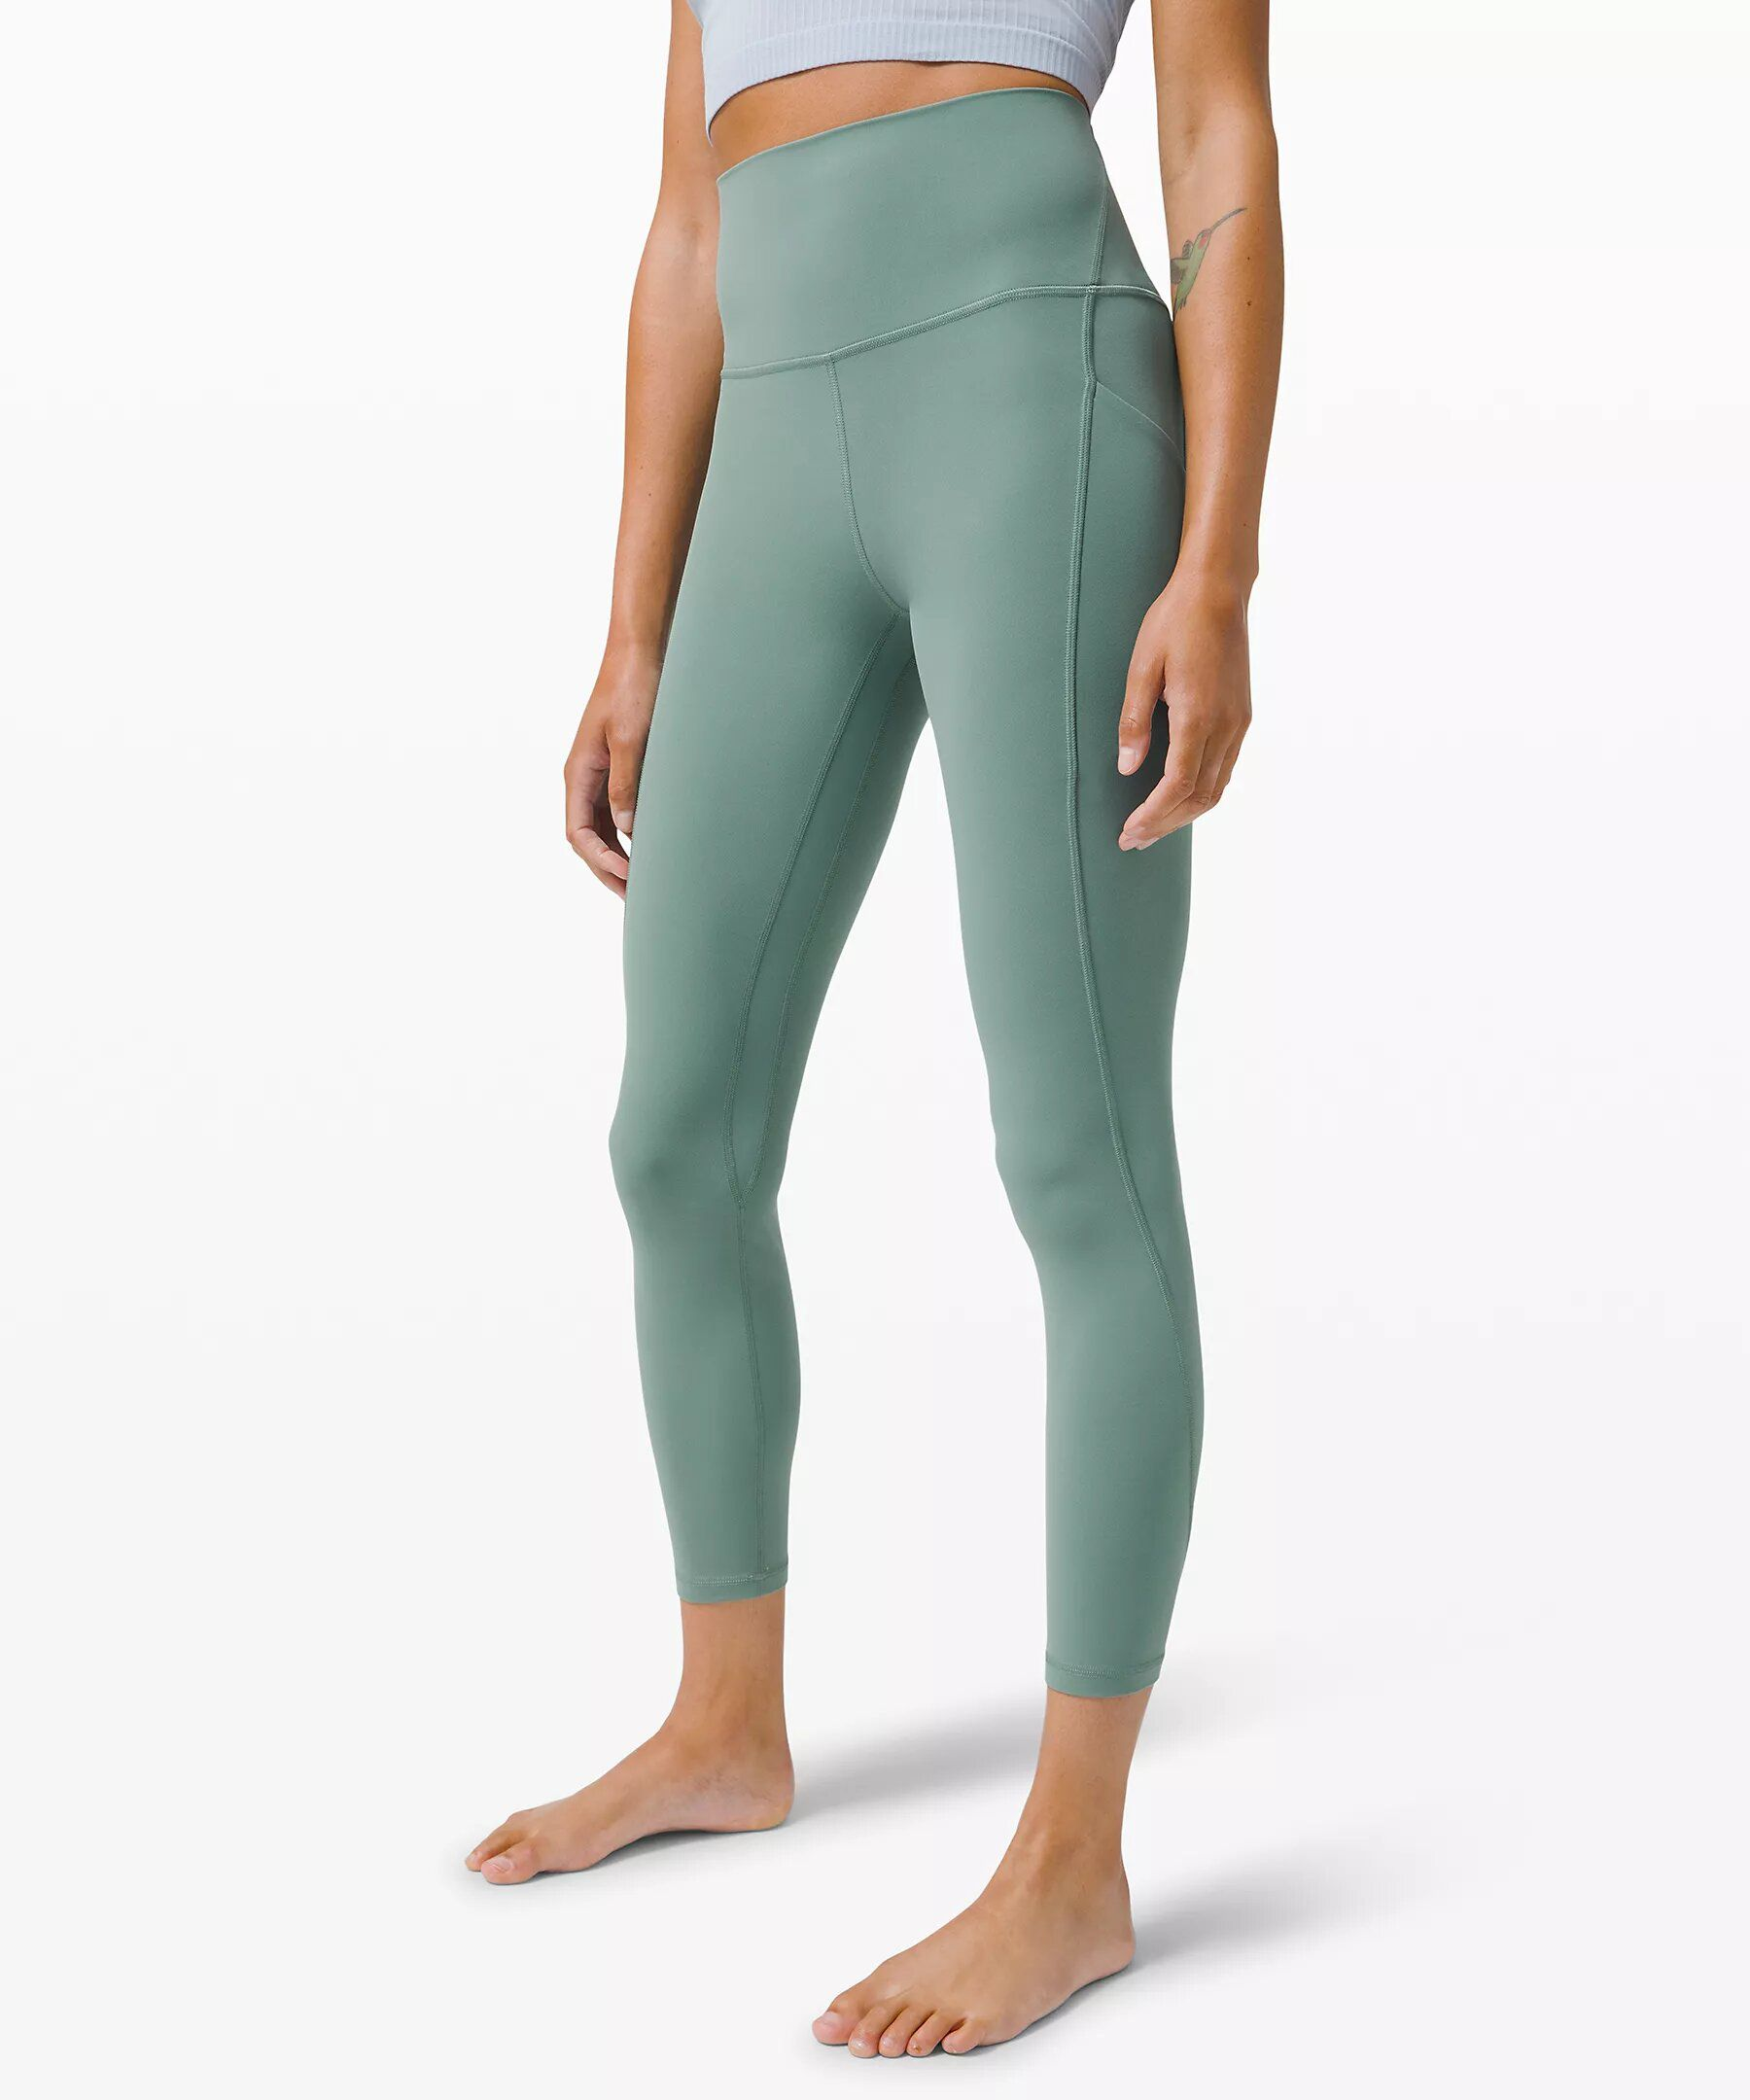 Lululemon Align High Rise Pant with Pockets